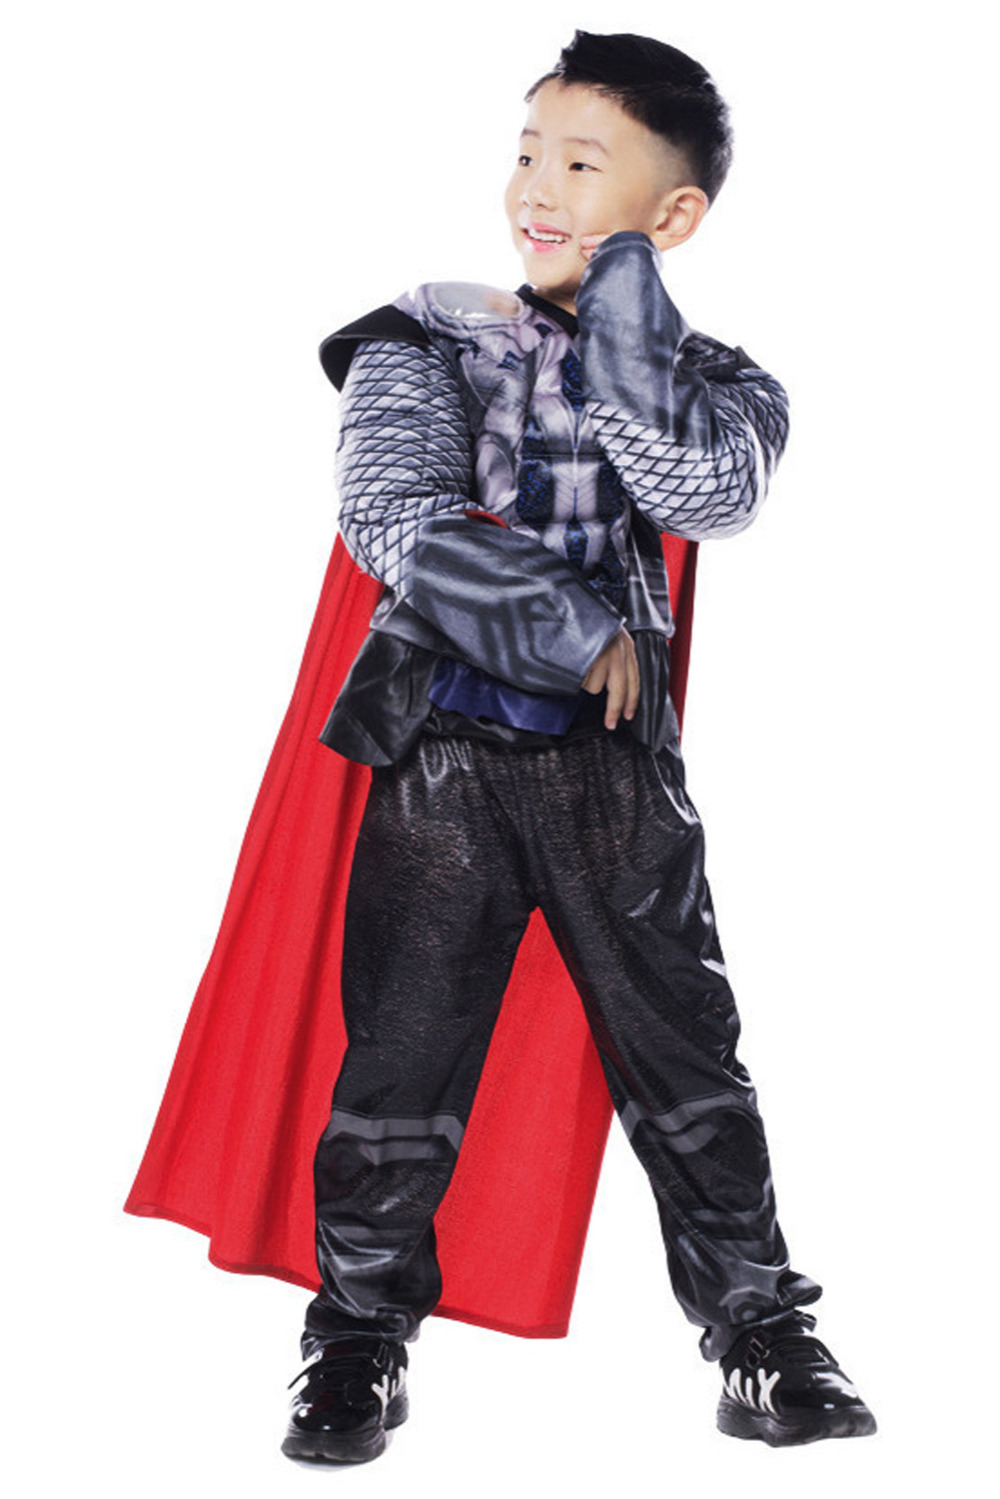 Marvel Thor Cosplay Costume Thor Cosplay Zip Hoodie For Kids Cosplay Costume For Children Children's Cosplay Costume Full Set